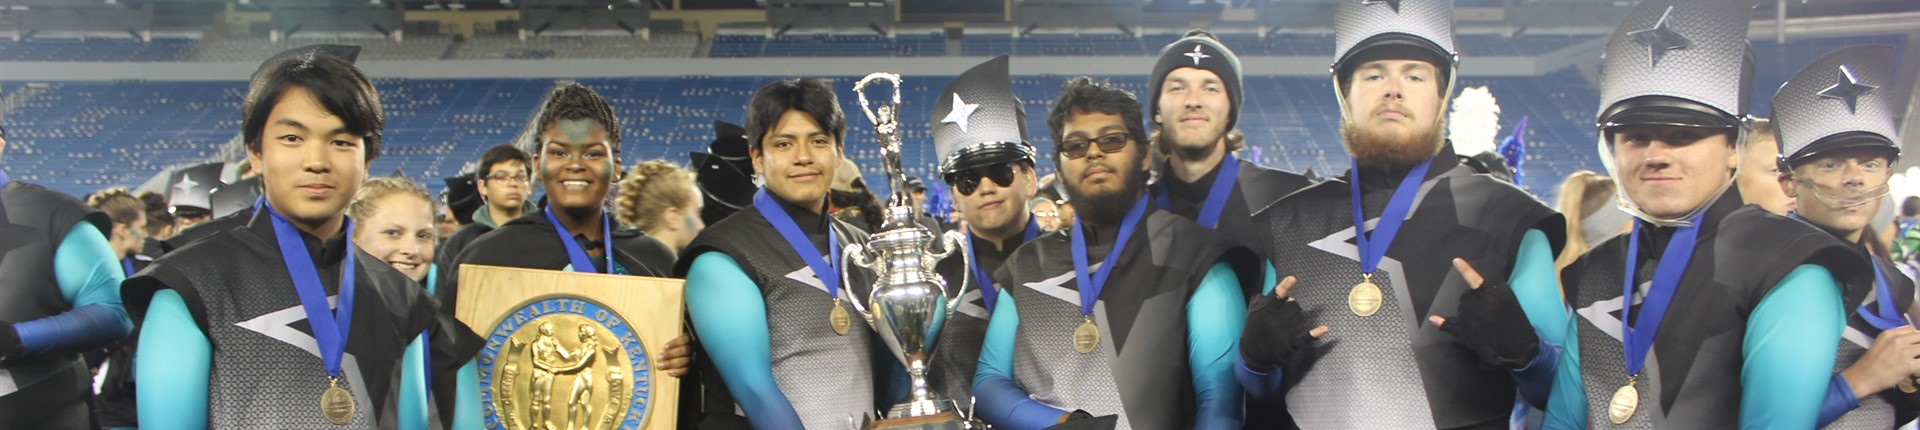 Senior Band Members With State Champion Trophy